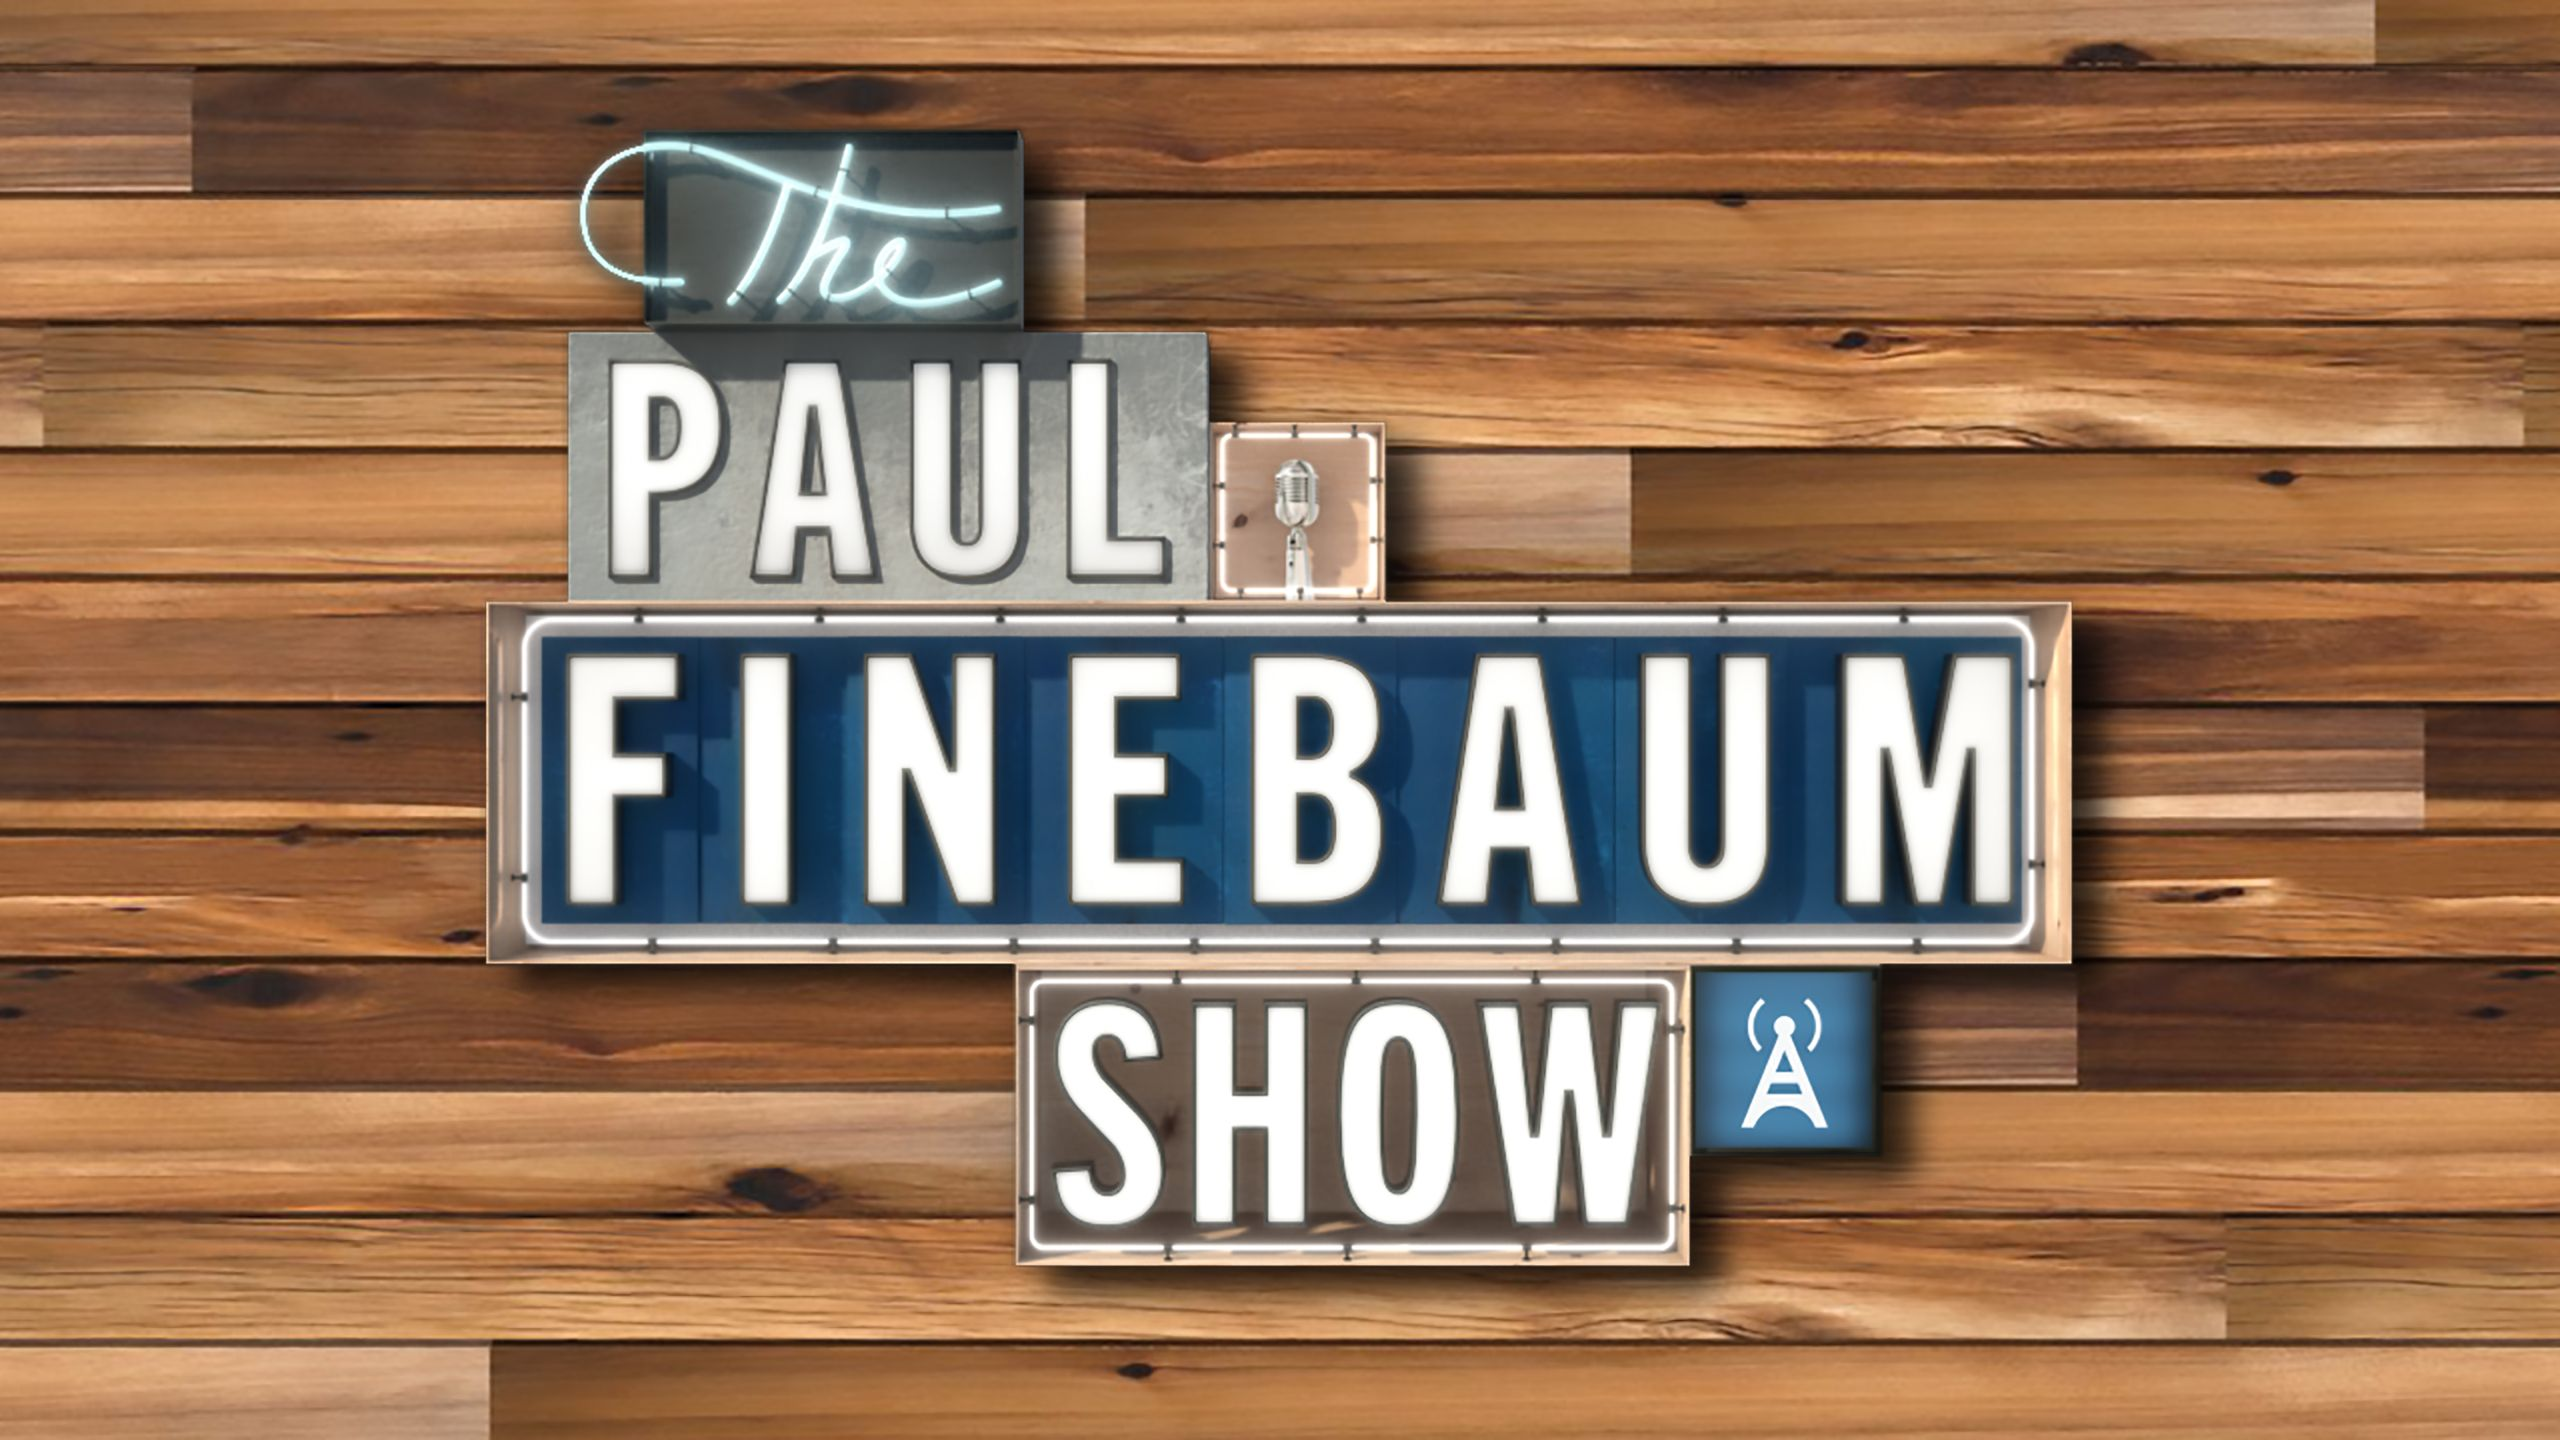 Tue, 10/17 - The Paul Finebaum Show